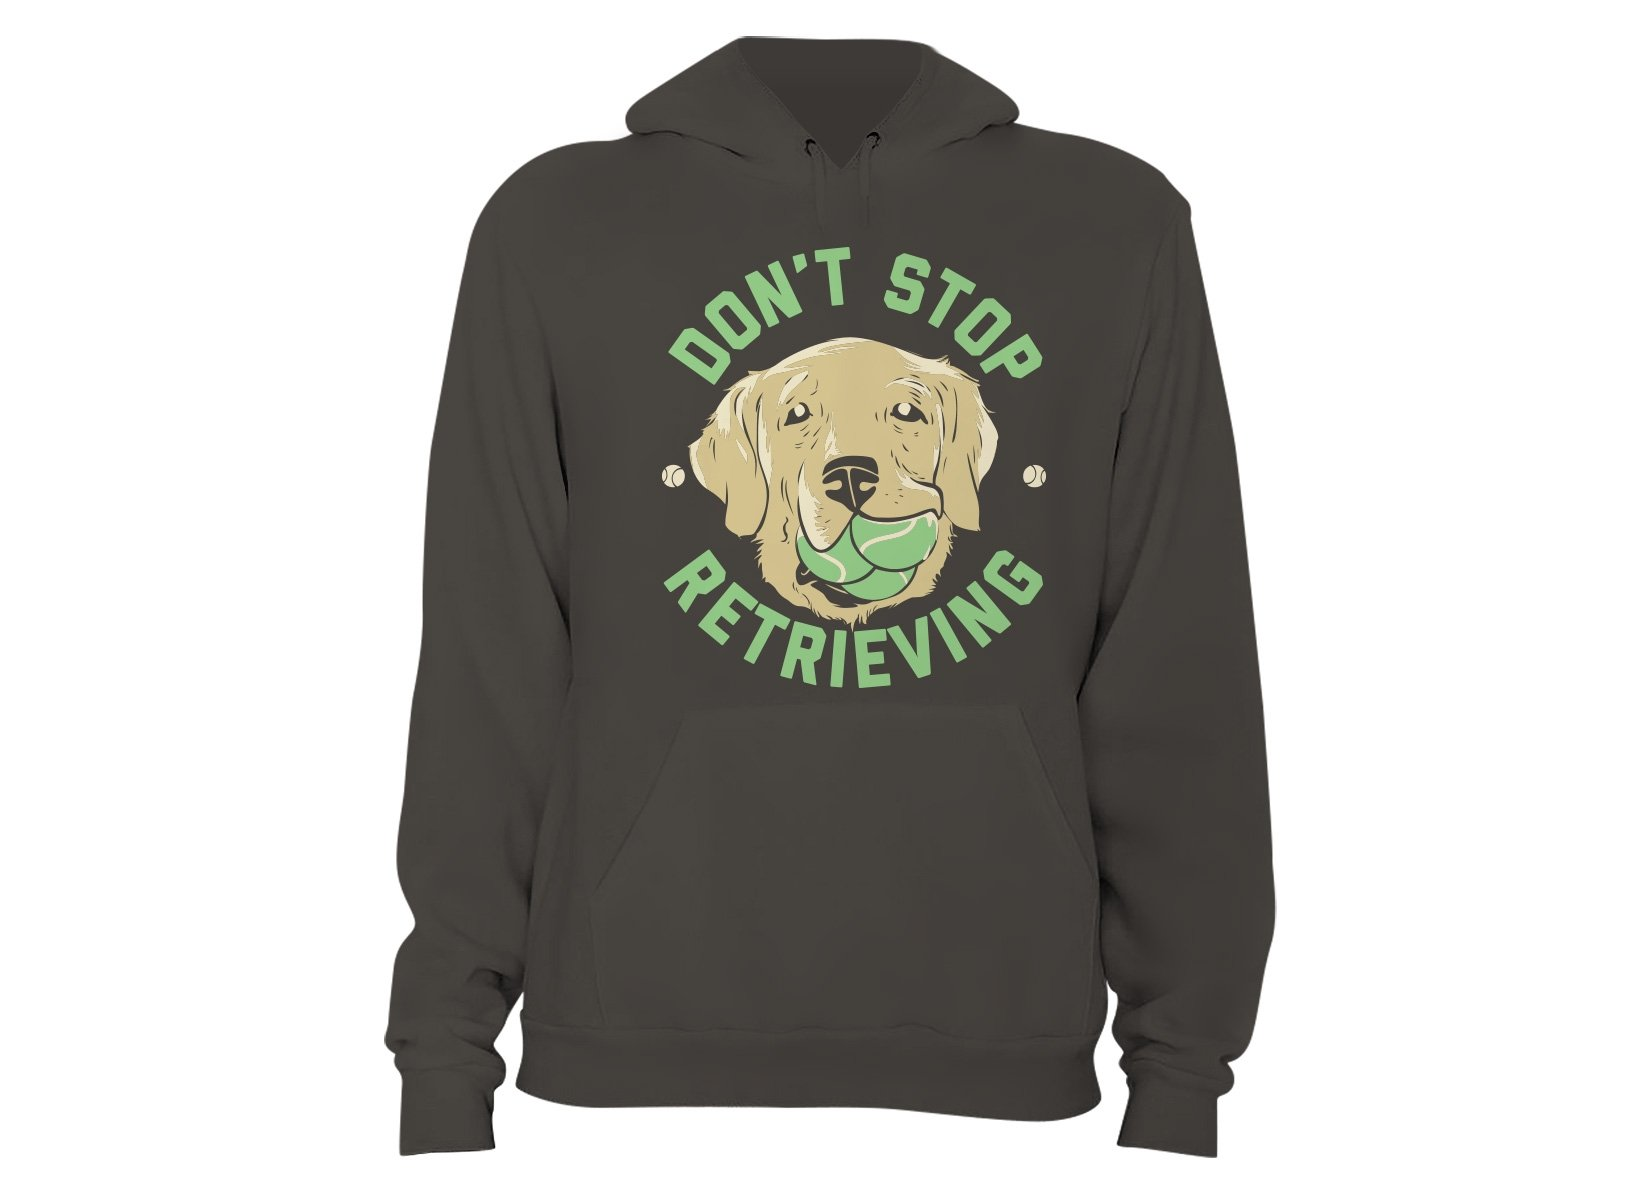 Don't Stop Retrieving on Hoodie